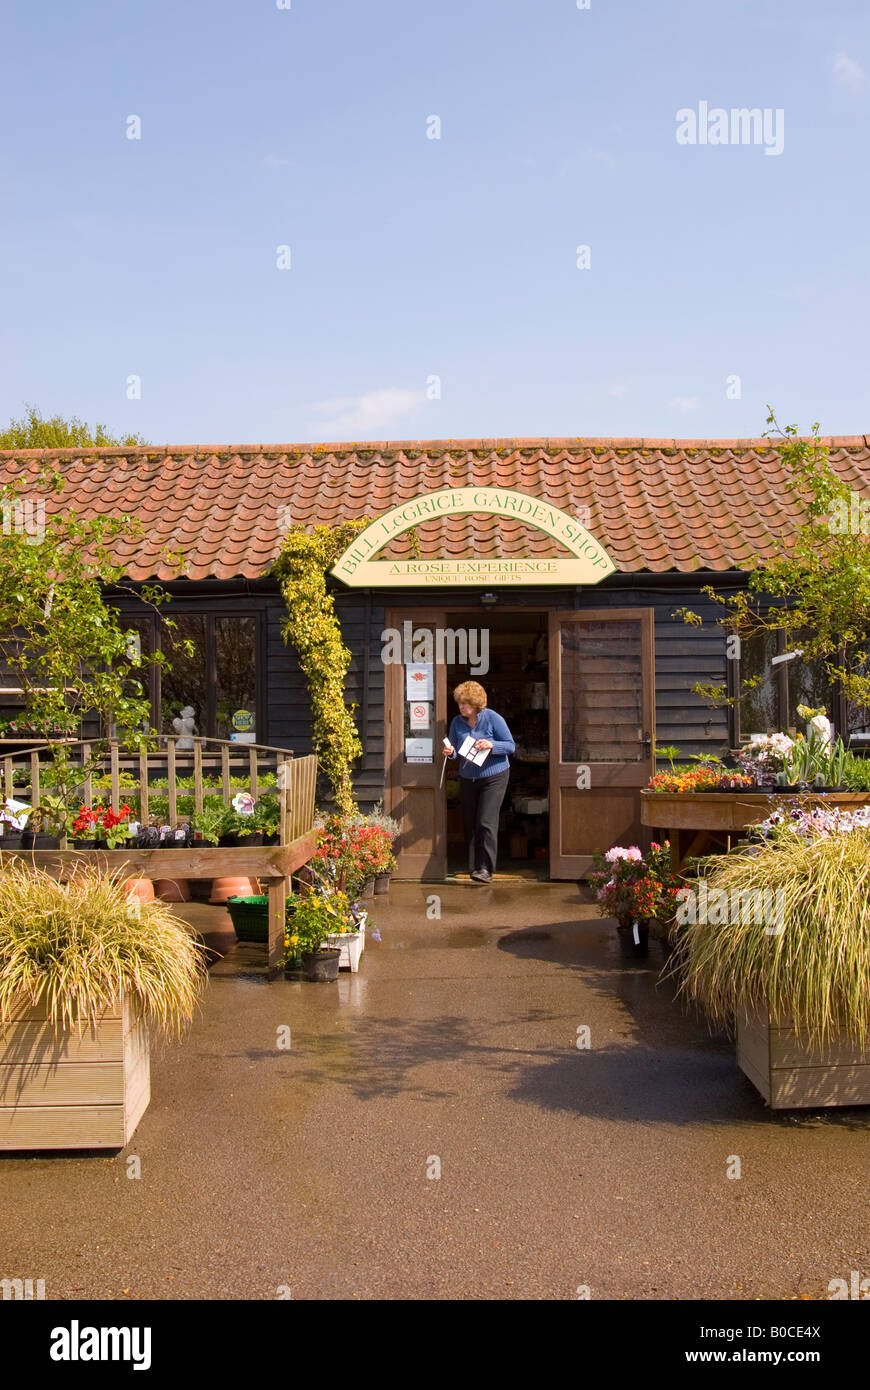 The Bill Legrice Garden Shop At Wroxham Barns In Norfolk,Uk Stock ...